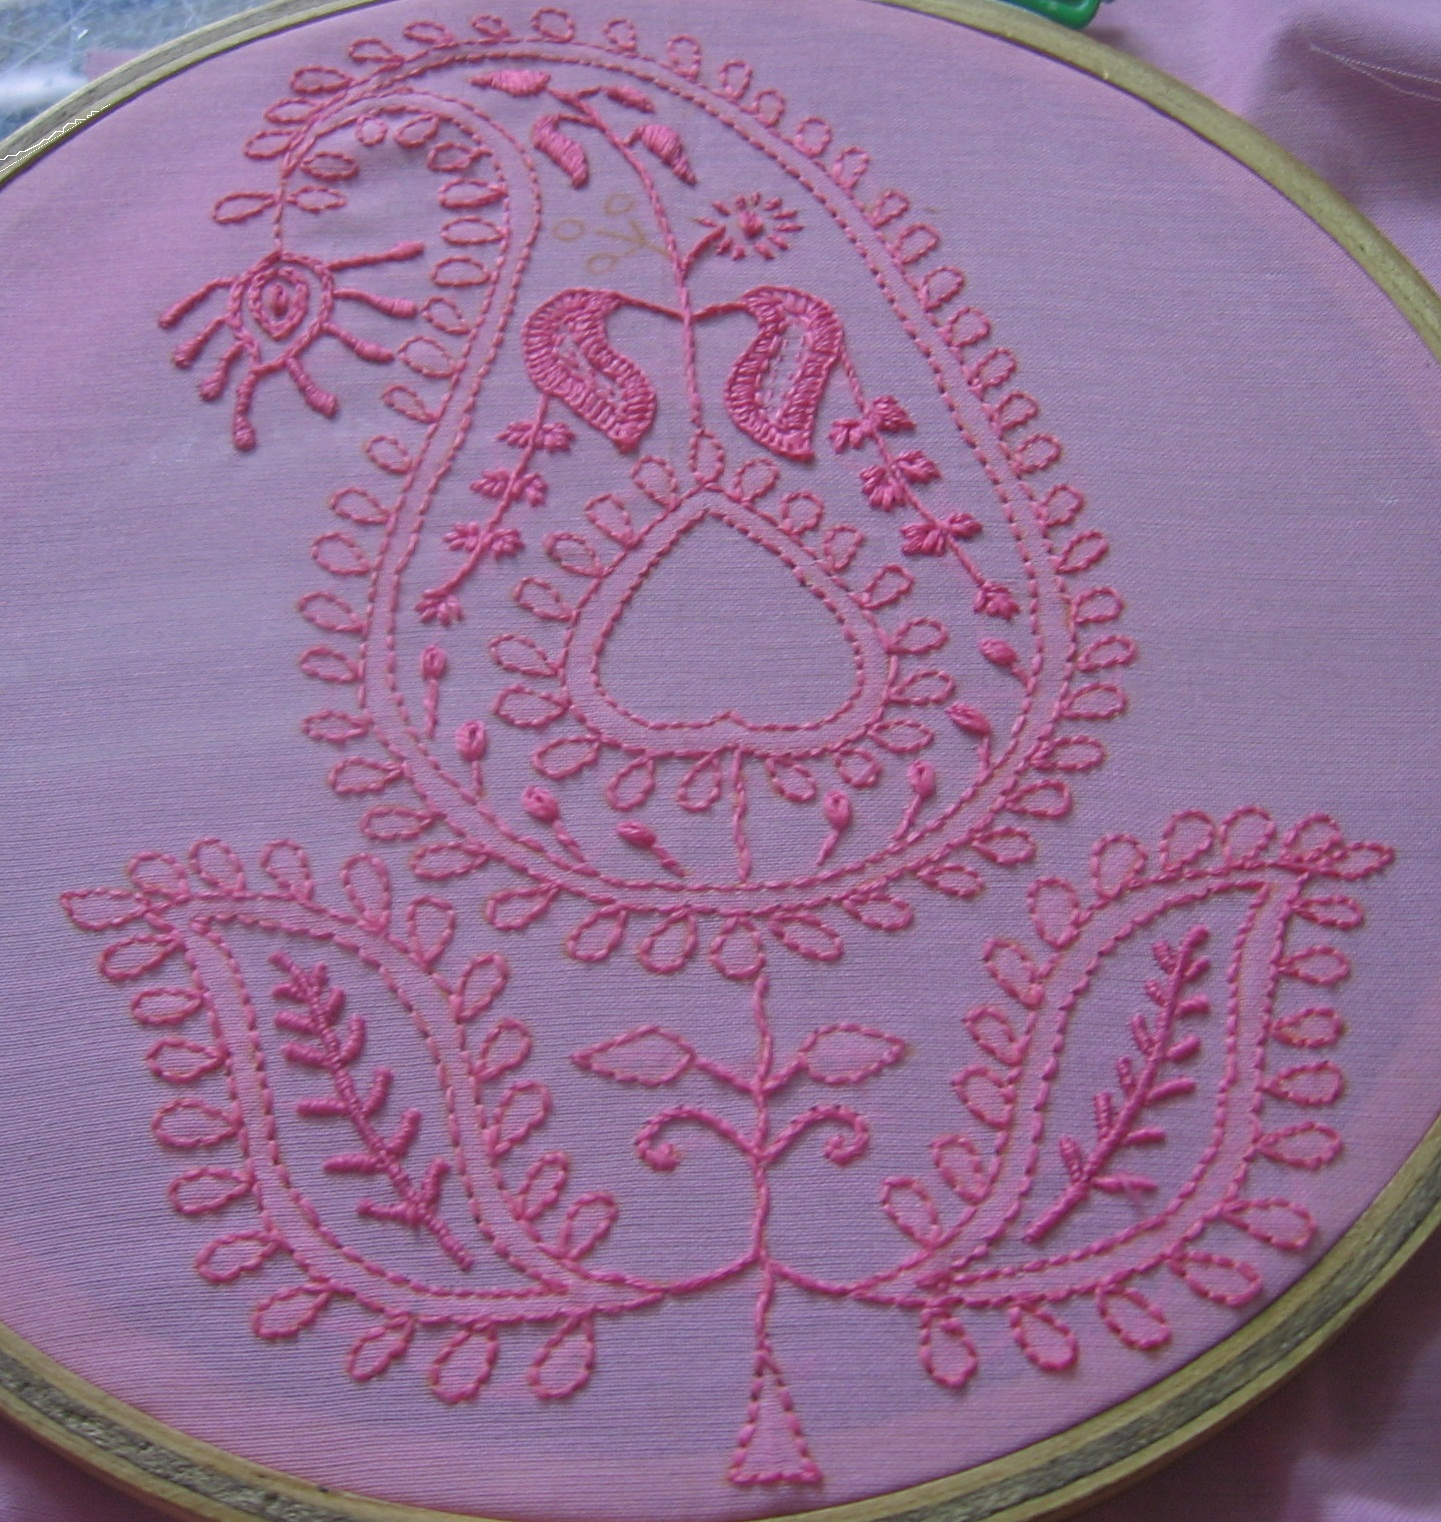 My craft works chikan embroidery sal